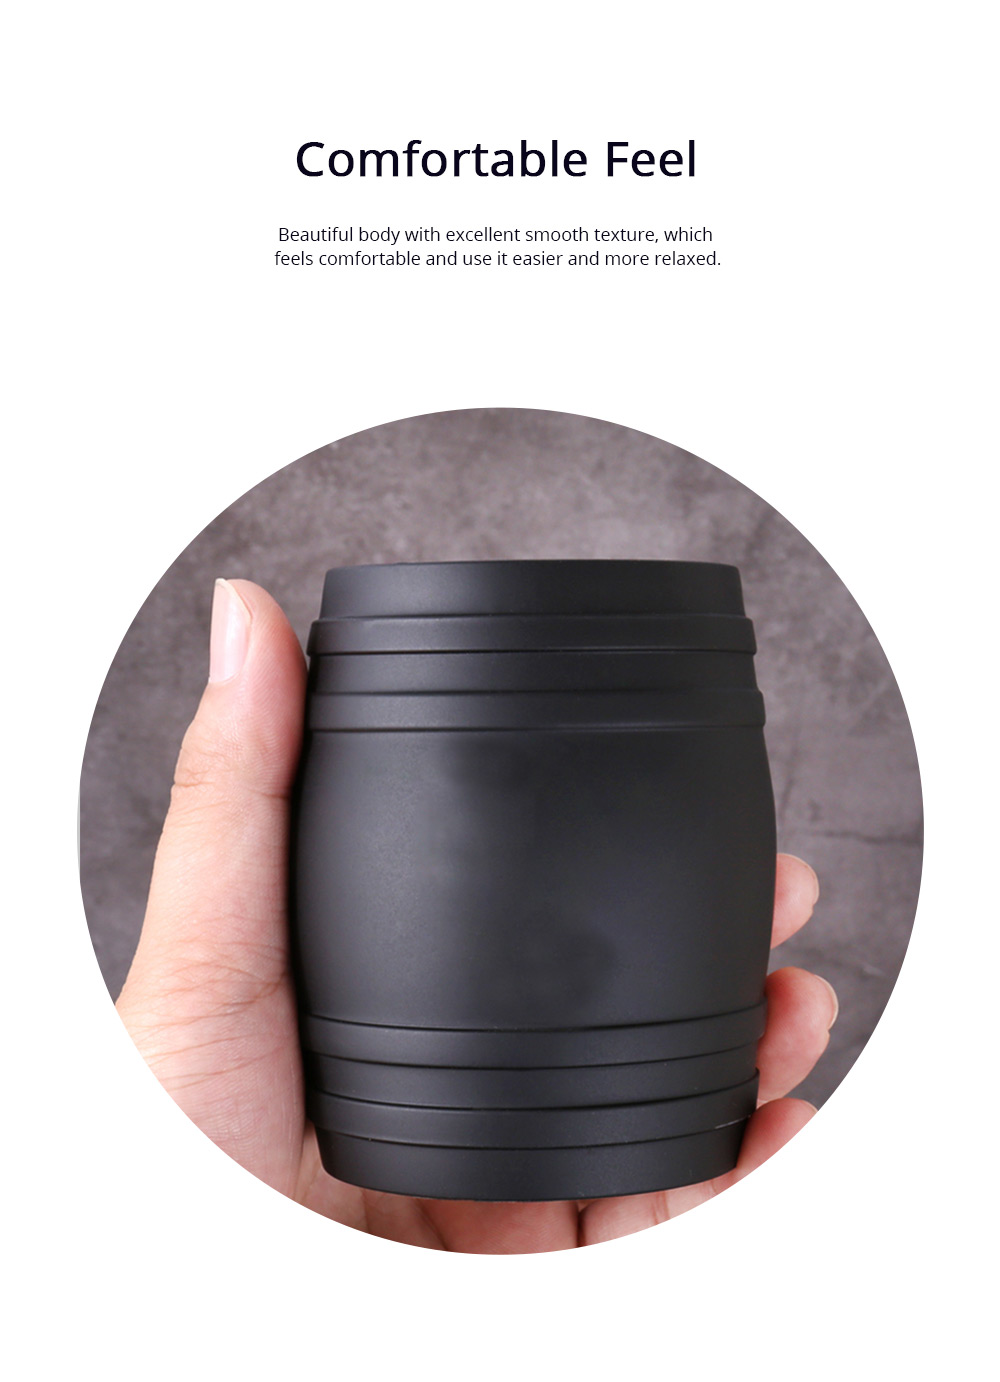 Thicken Dice Cup Fashion Stylish Wine Barrel Shaped Dice Shaker Holder for Playing Dice Games in Bar KTV Nightclub 3